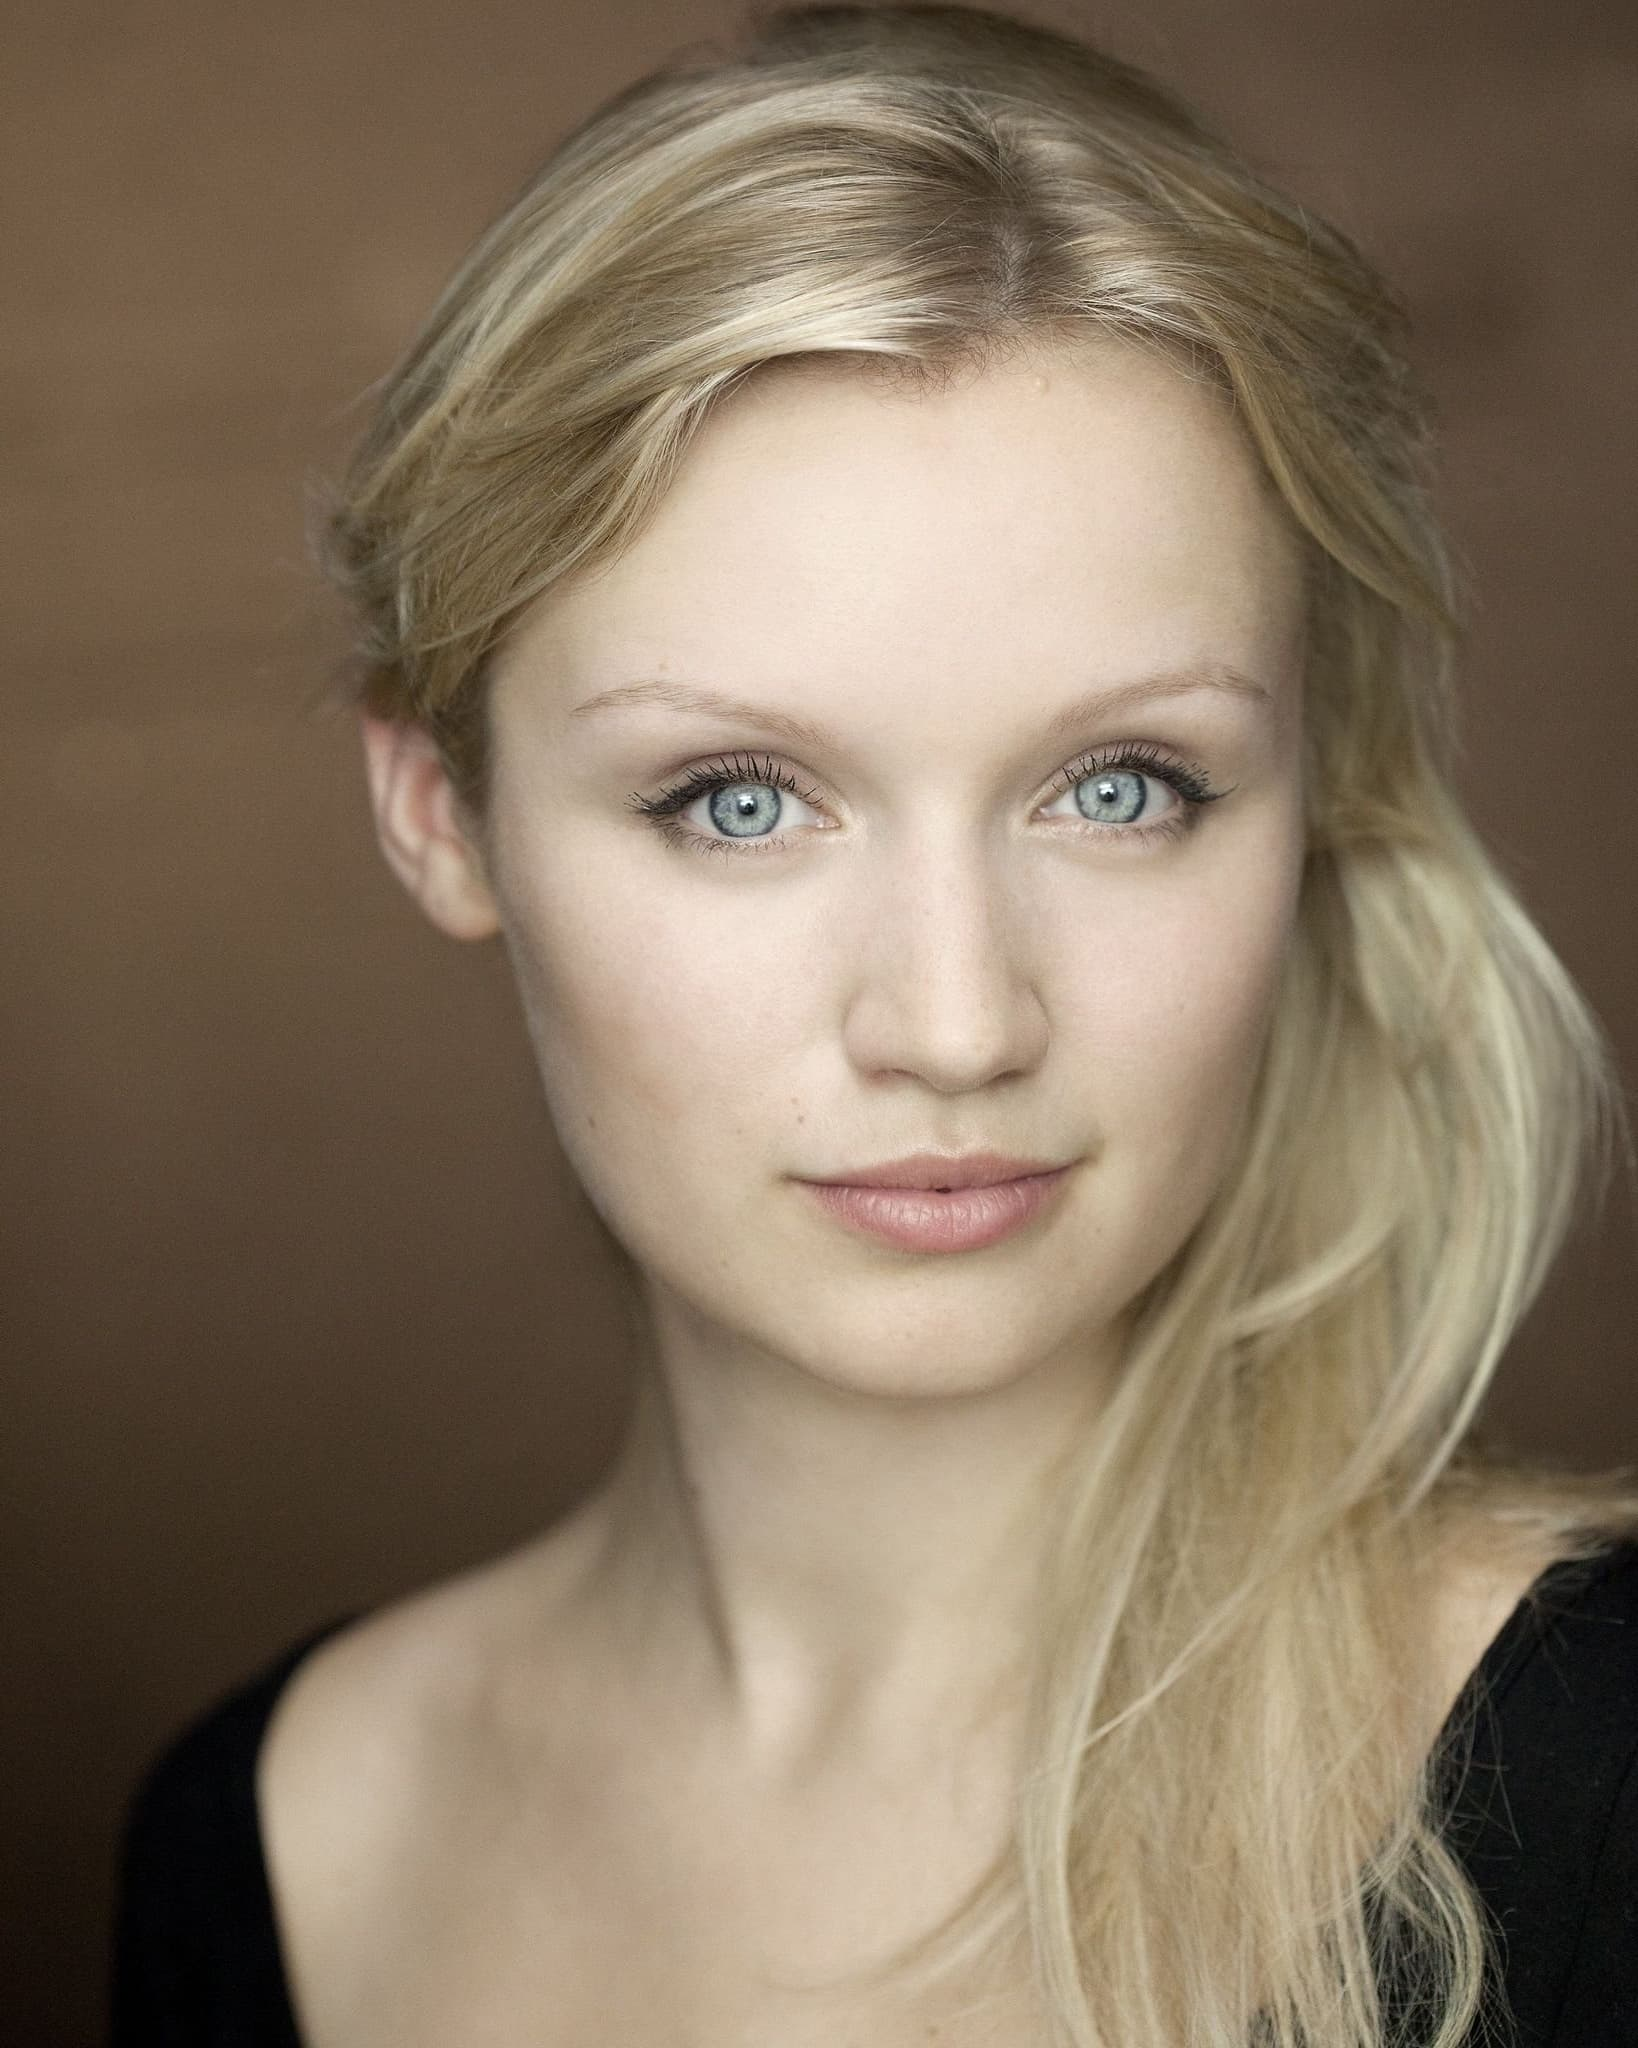 Emily Berrington (born 1986)